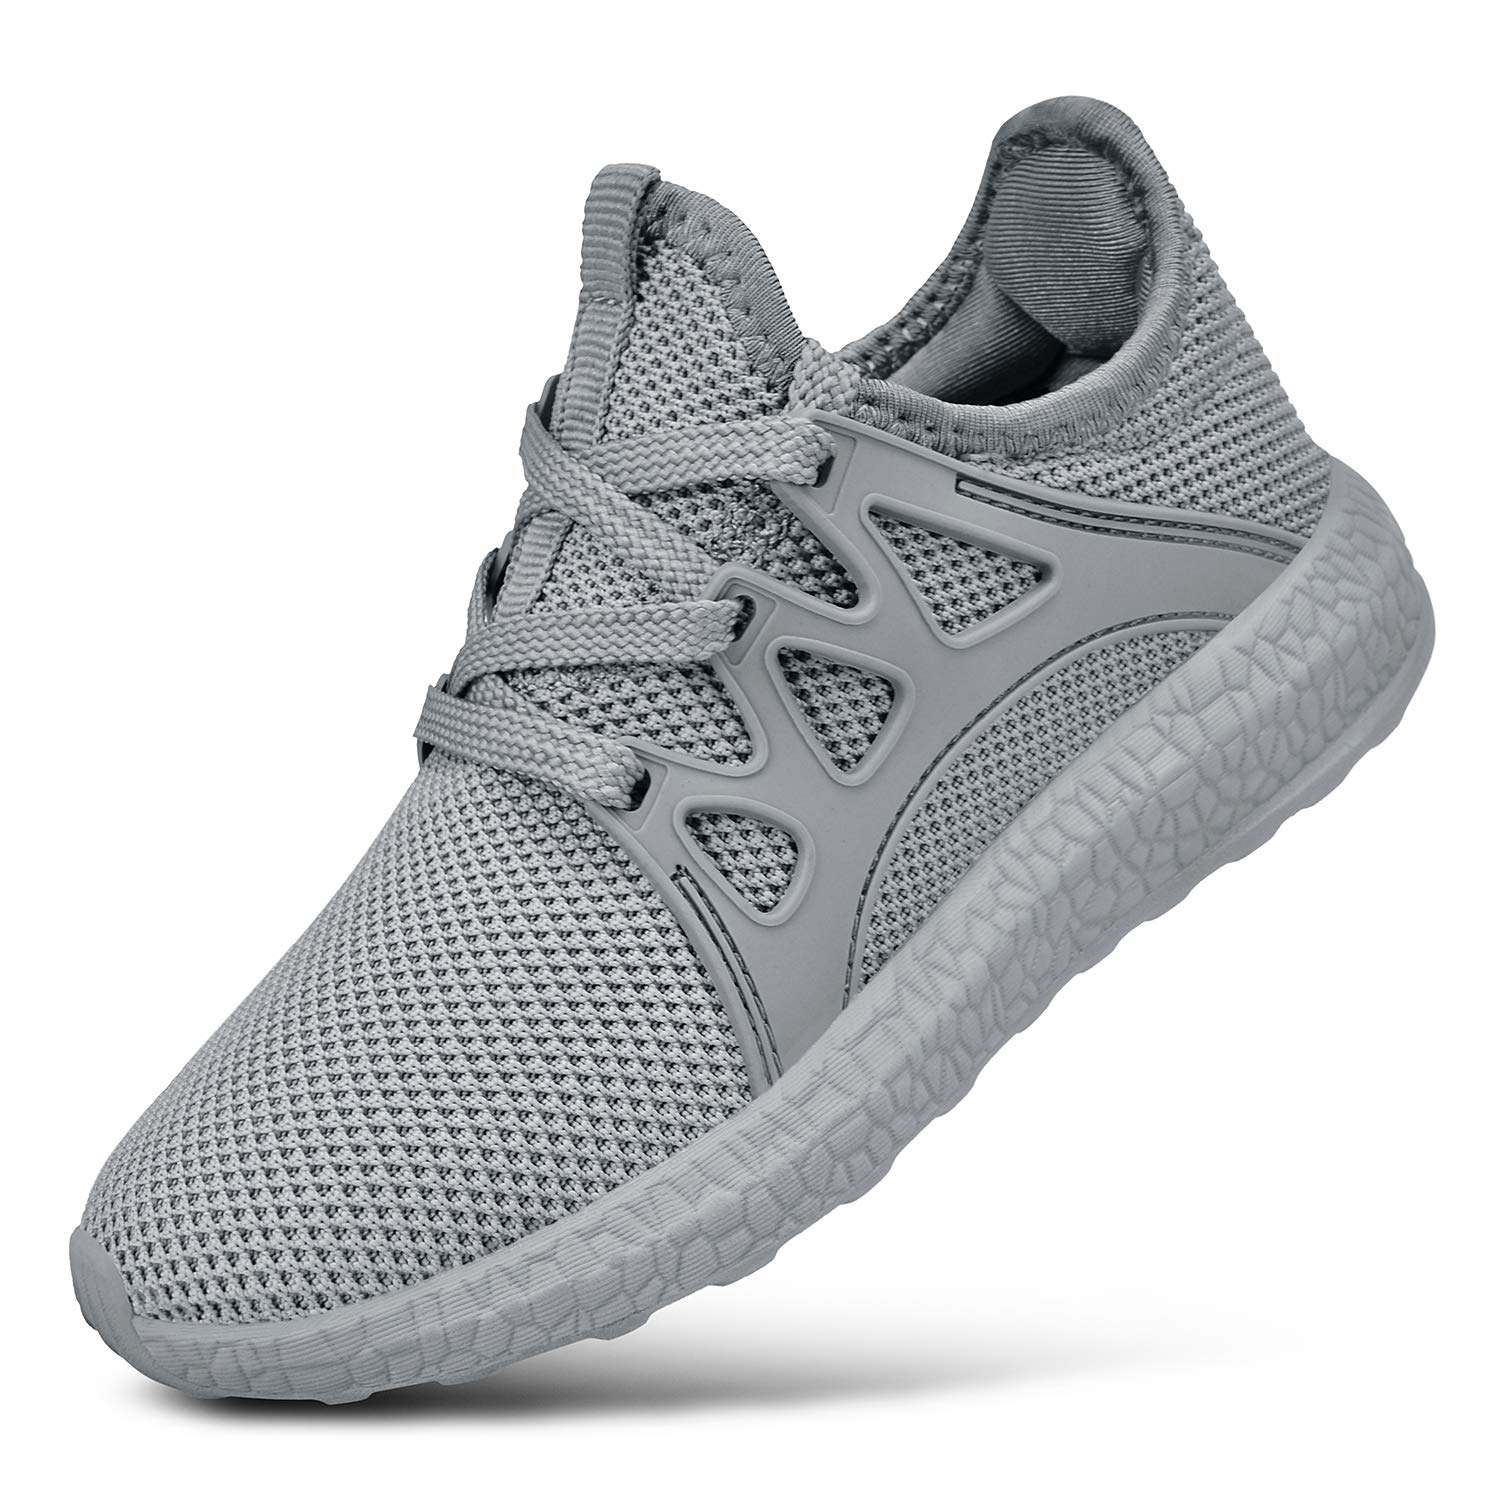 SouthBrothers Boys Shoes Lace Up Breathable Girls Sneakers for Kids Gray Size 1.5 M US Little Kid